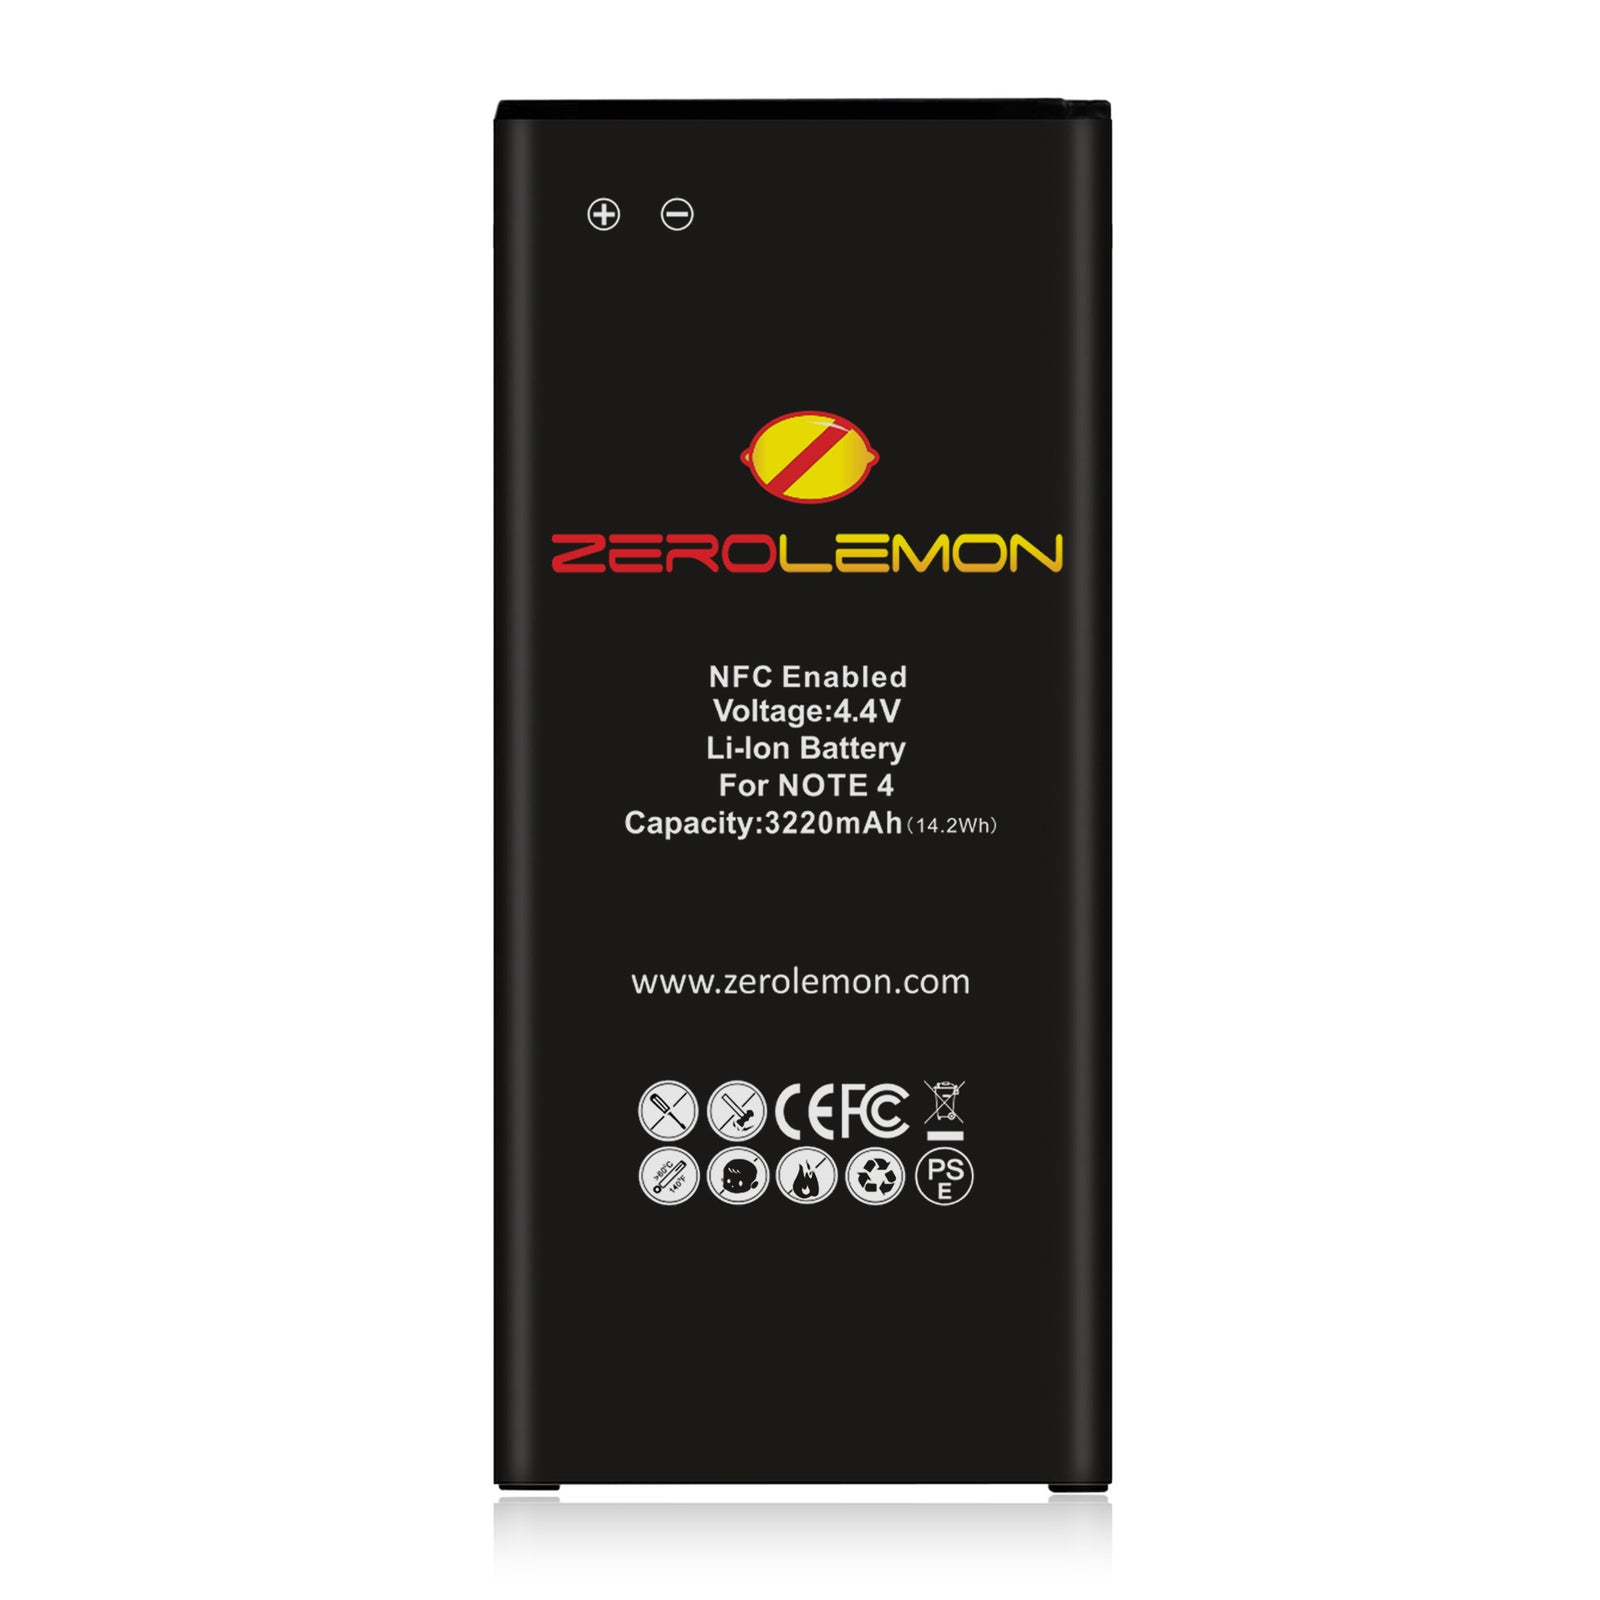 Zerolemon Galaxy Note 4 3220mAh Slim Battery - 1 Pack